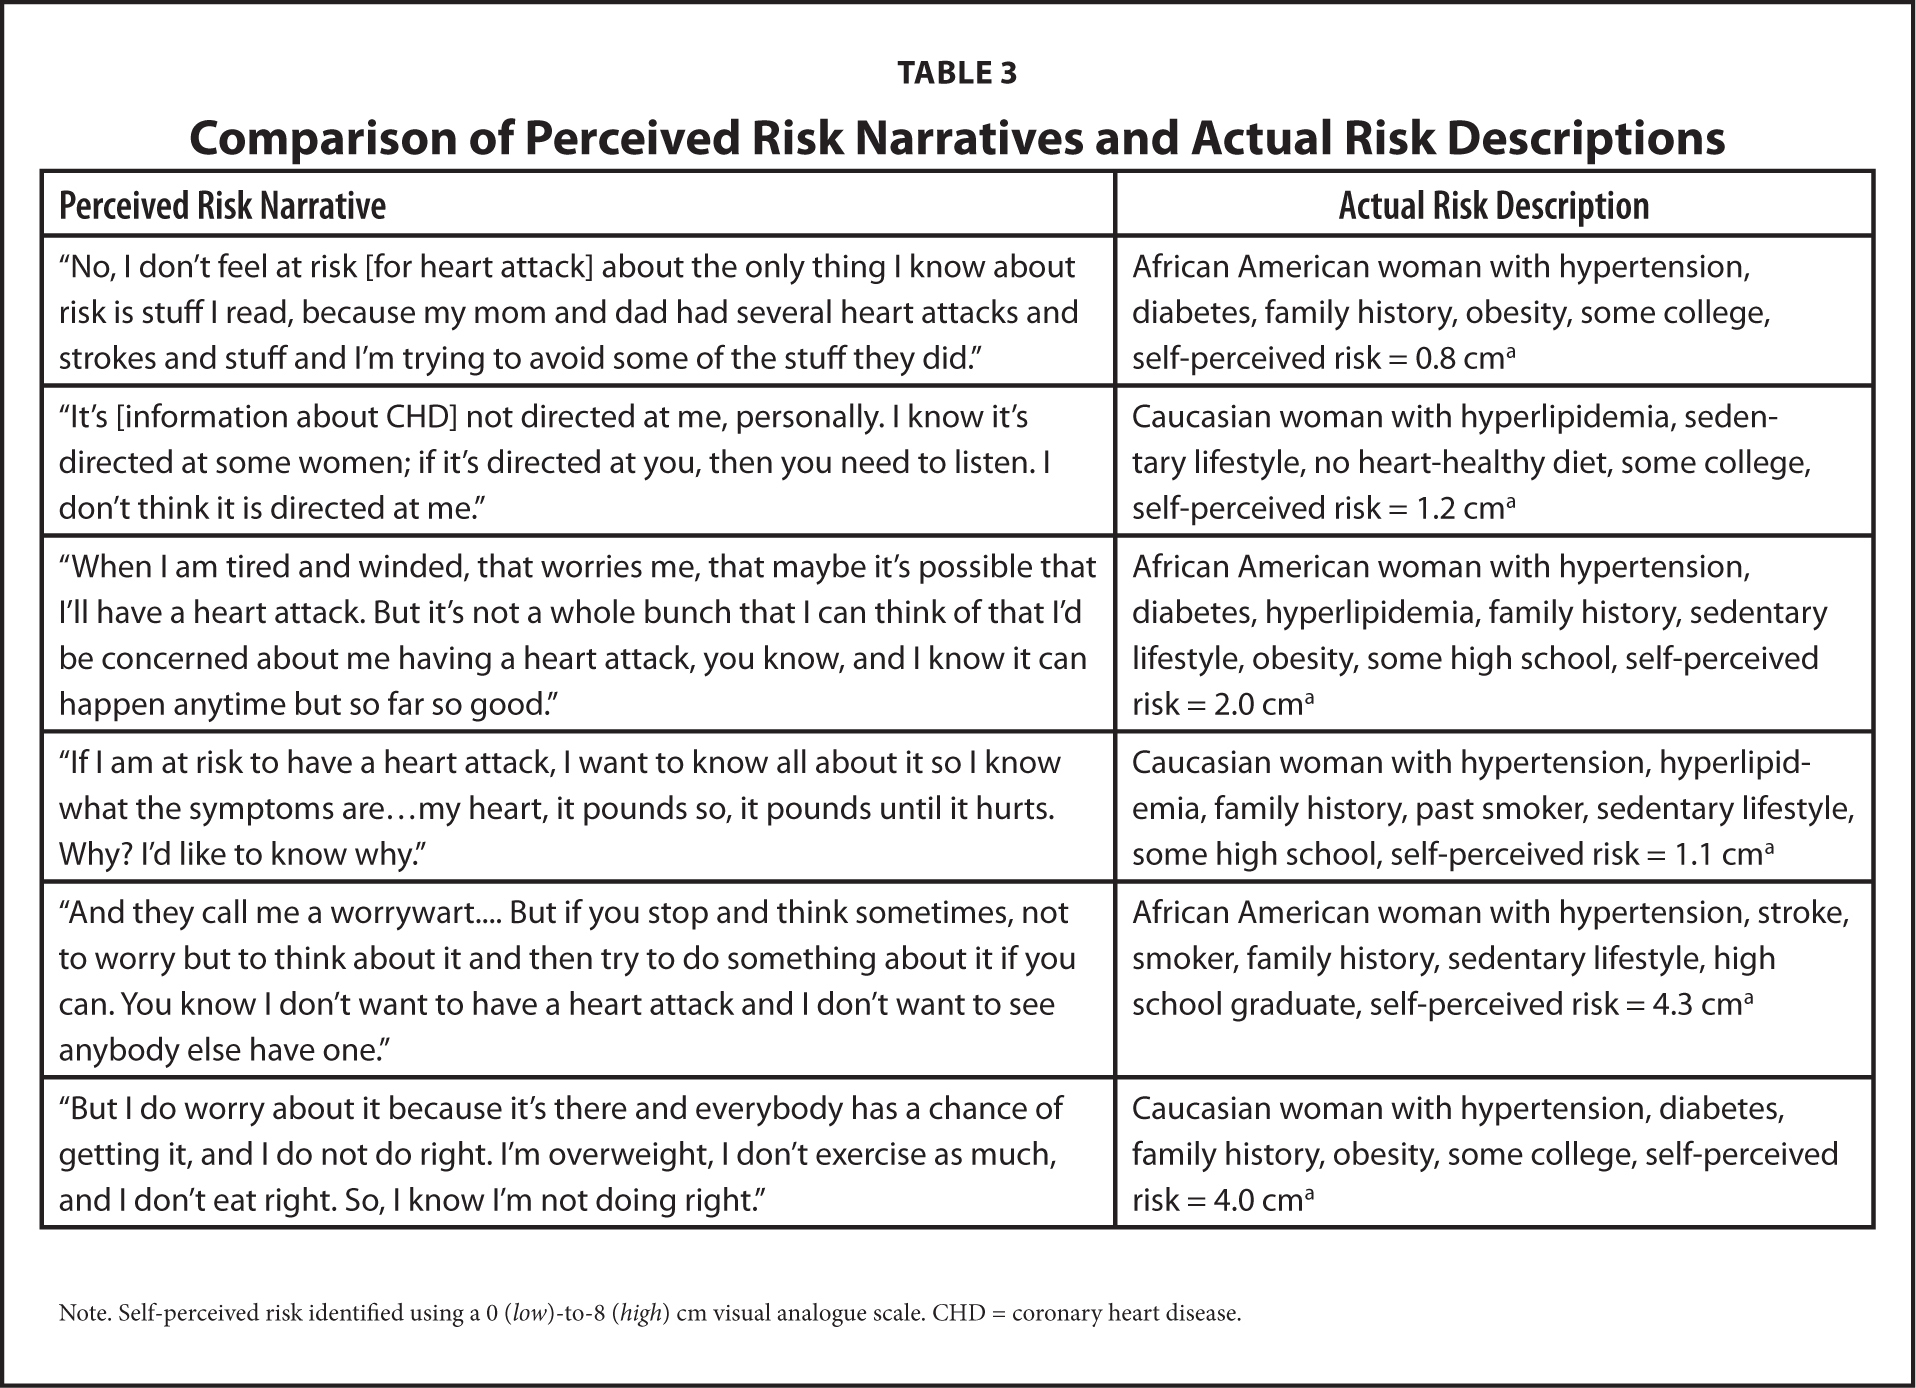 Comparison of Perceived Risk Narratives and Actual Risk Descriptions